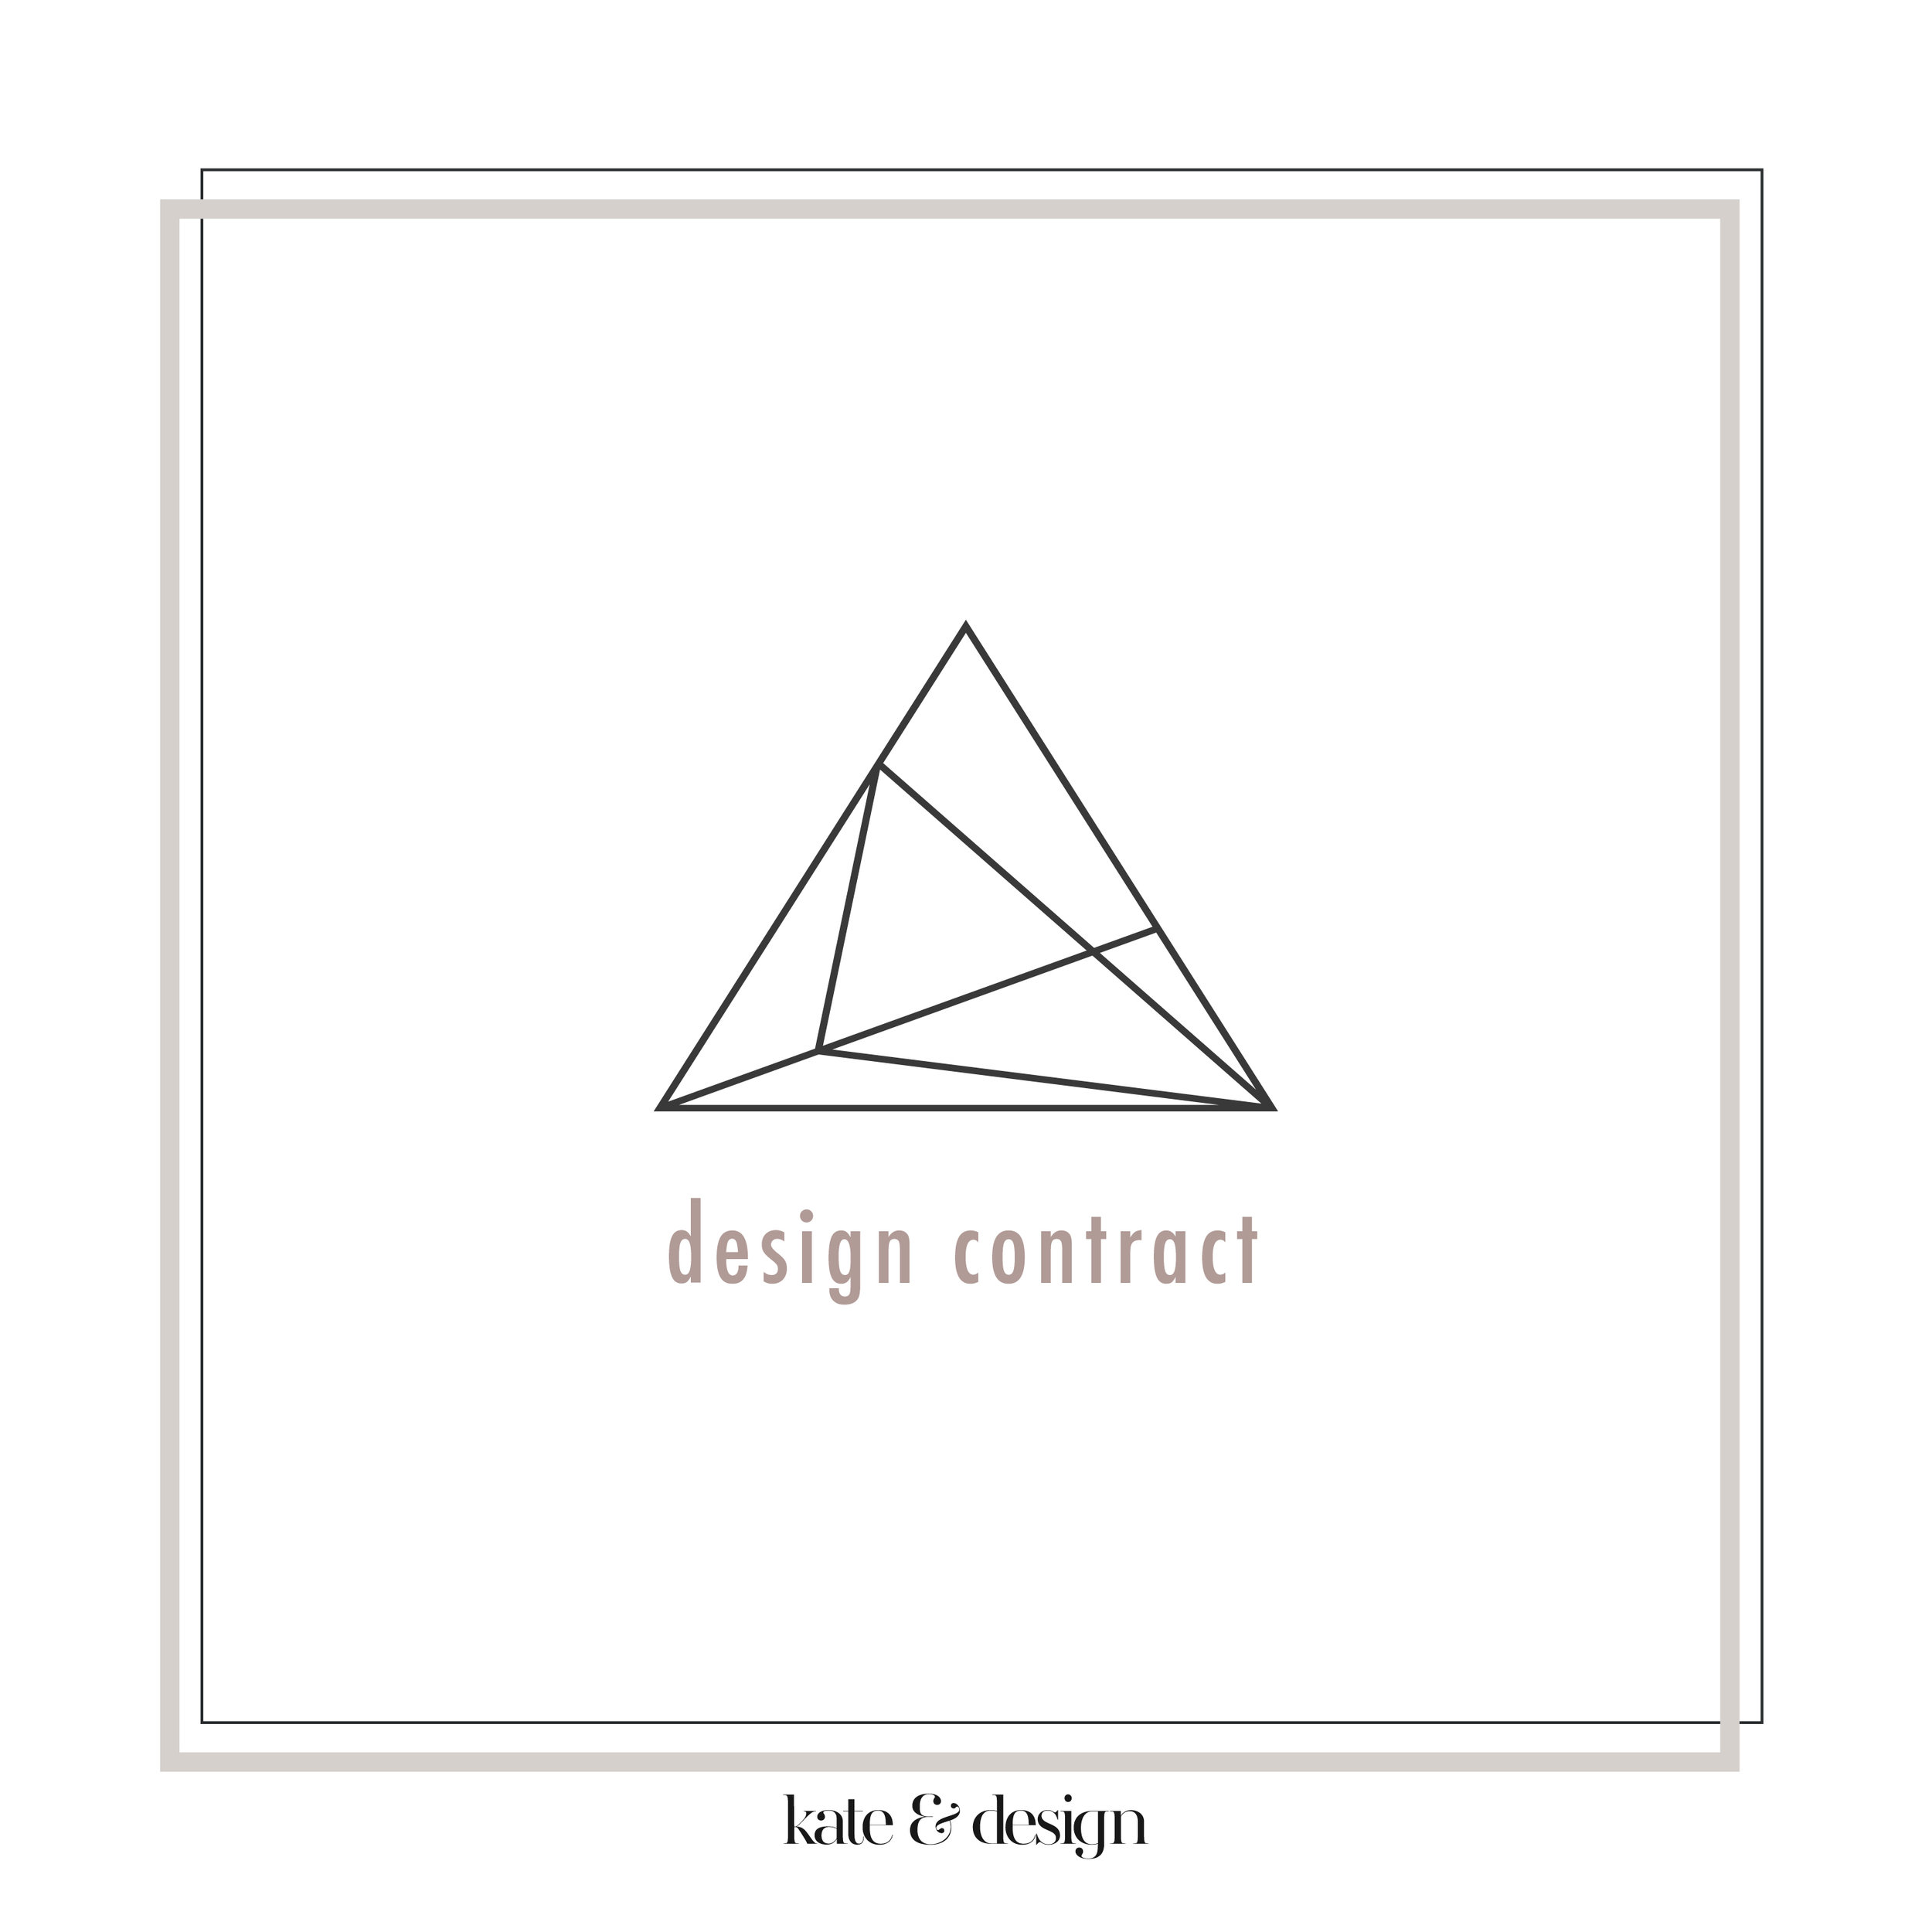 Copy of design contract